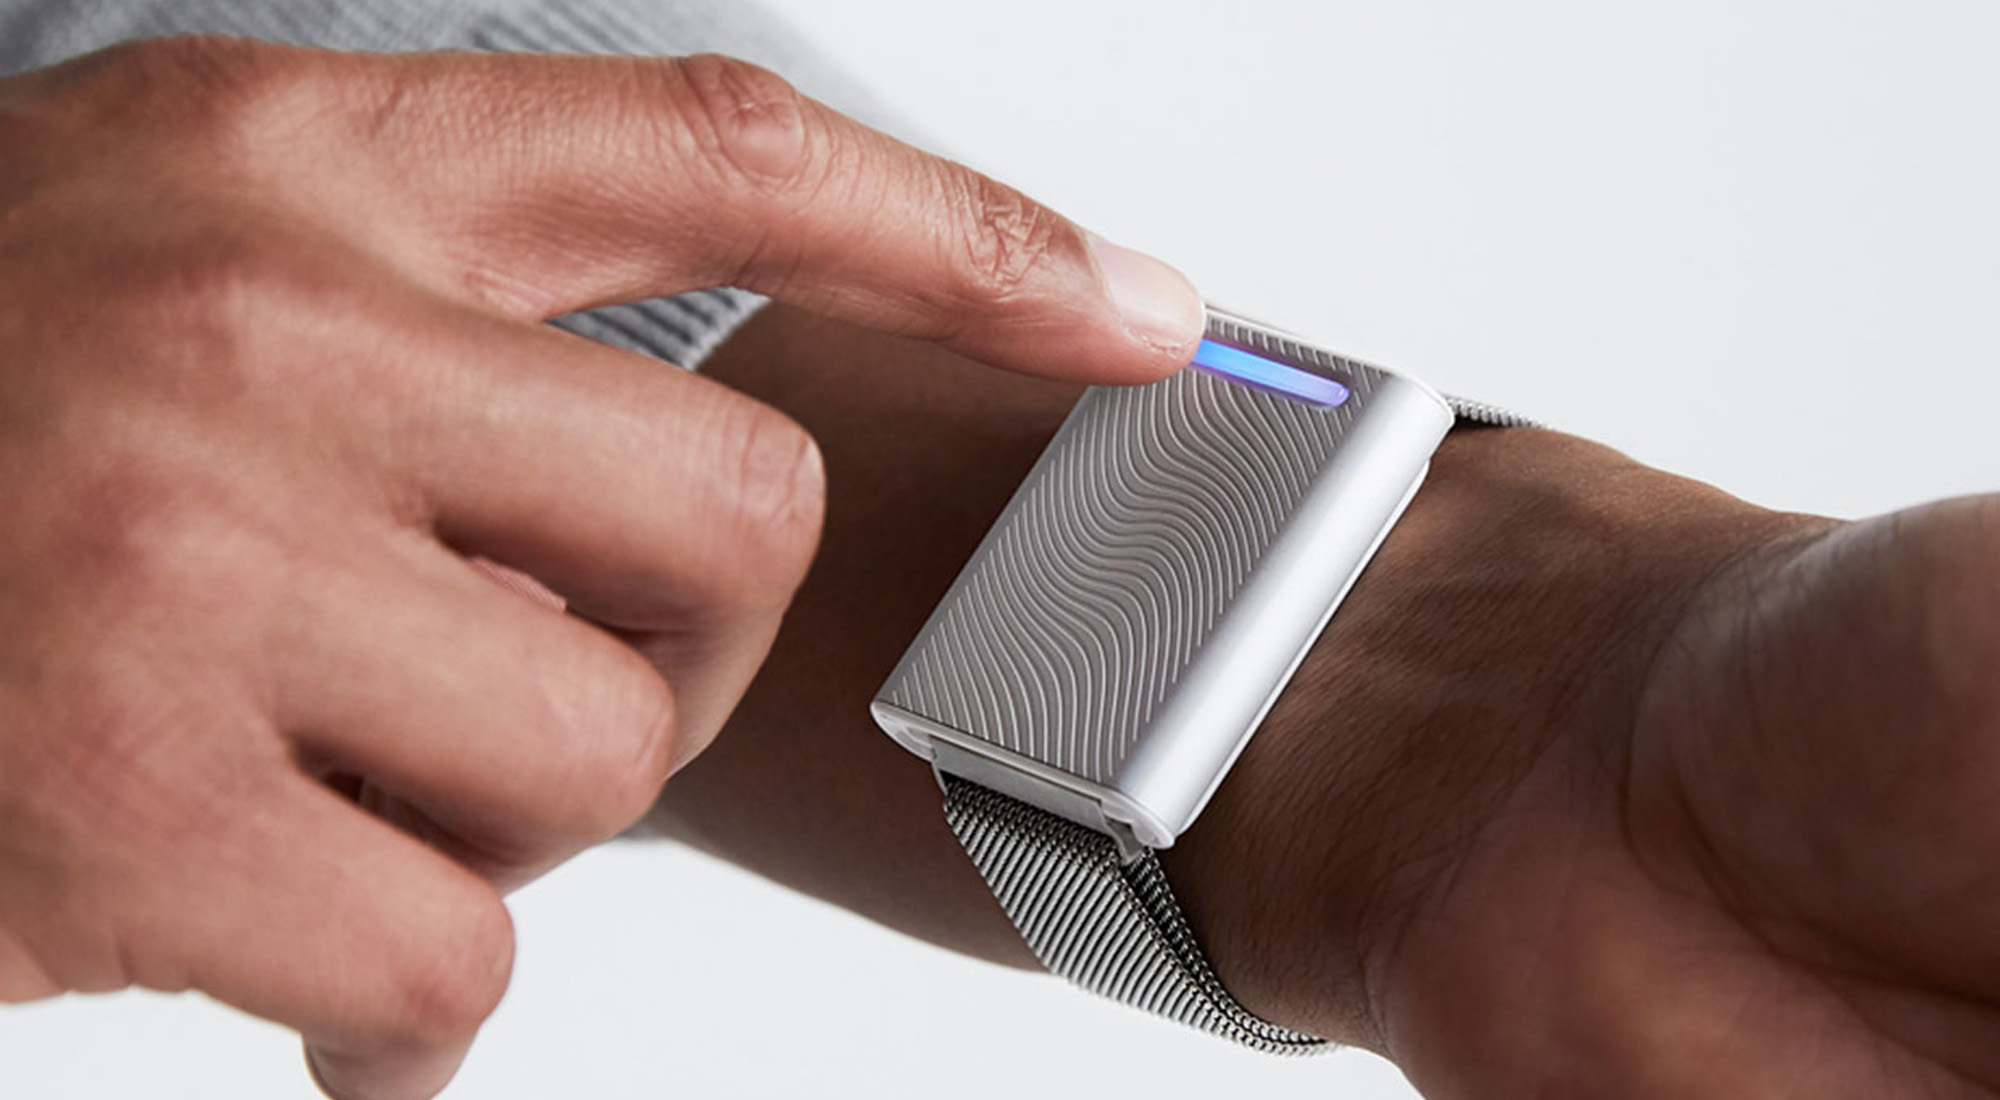 ces consumer tech showcase wearable tech design partners monitor personal health wrist